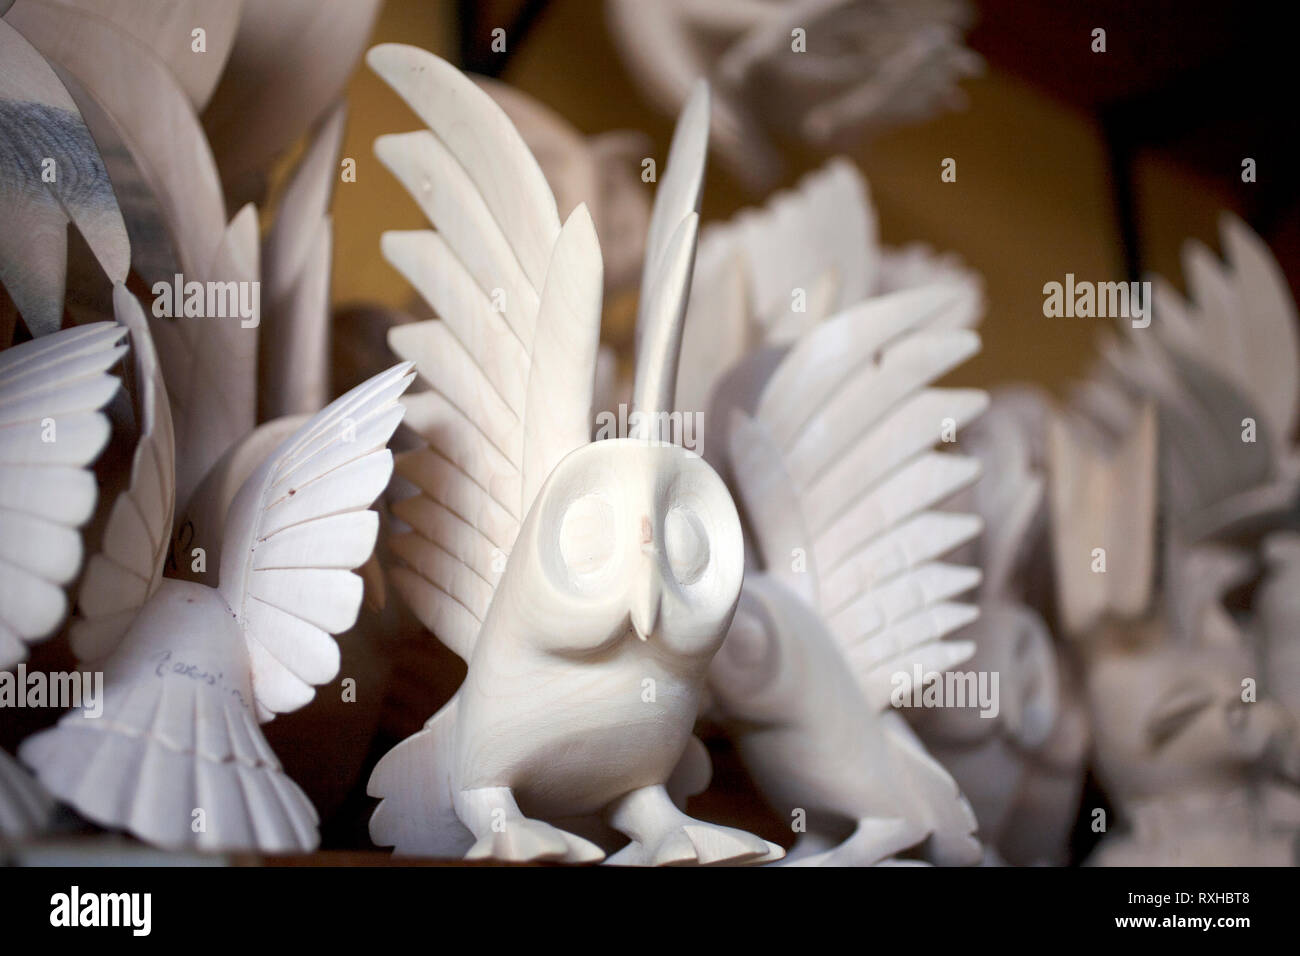 Sculptures of animals are displayed in a sculptor's studio in San Martin Tilcajete, Oaxaca, Mexico, July 13, 2012. - Stock Image